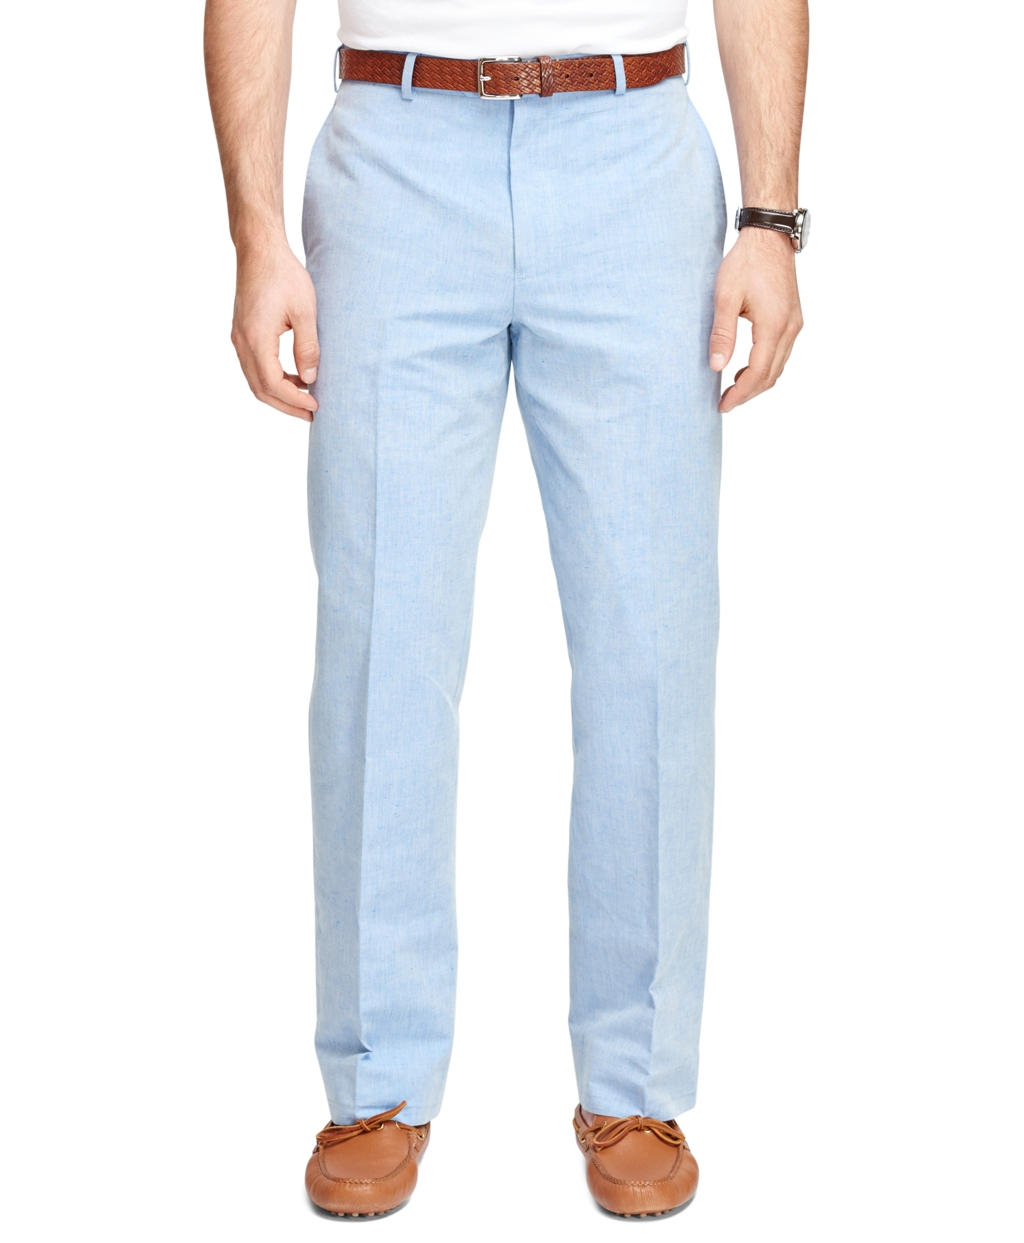 This or that light blue versus navy chambray pants ask for Chambray jeans